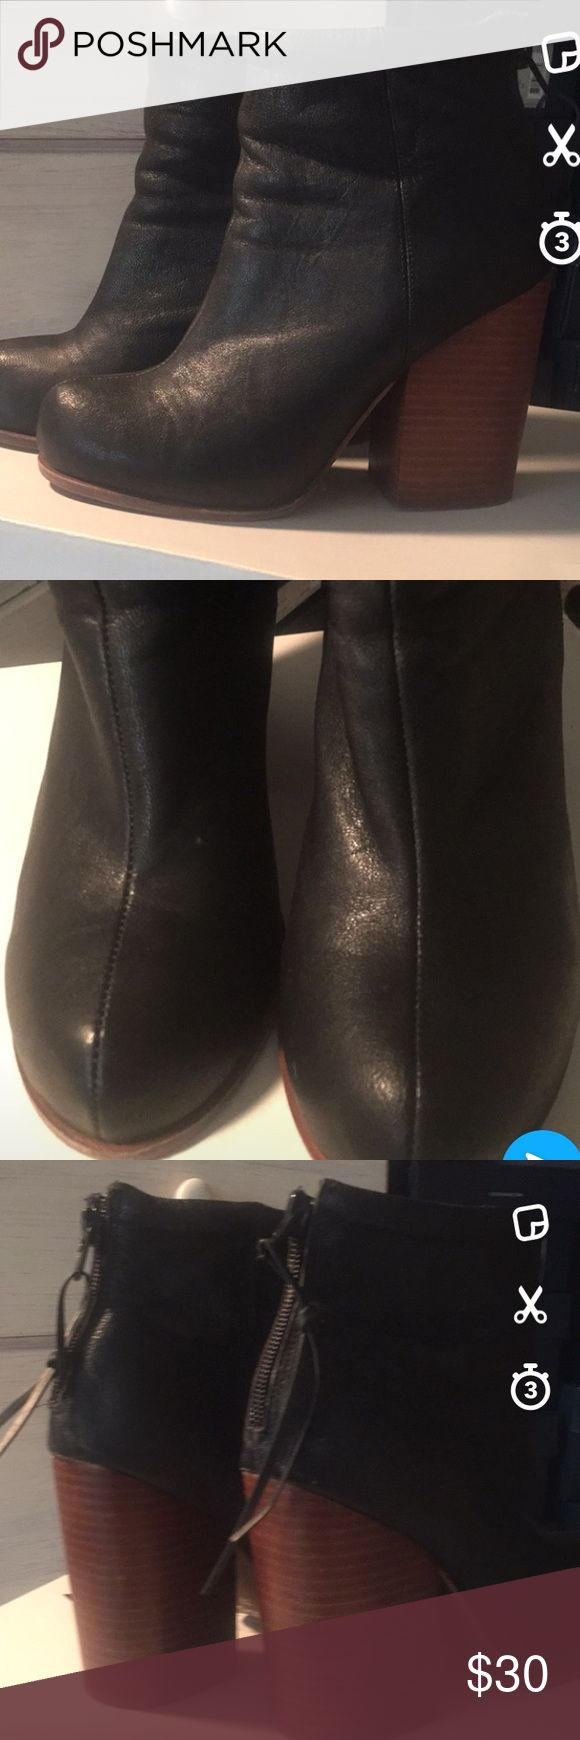 Aldo boots Black leather boots with stacked chunky heels. About 4'5 inches high. Rubber soles. Worn only 3-4 times soles are still I. Good shape.  Back zipper. Round toe with stitching down the middle the upper ankle part has  cushioned. Very comfortable and great with jeans, skirts, and dresses! Aldo Shoes Ankle Boots & Booties